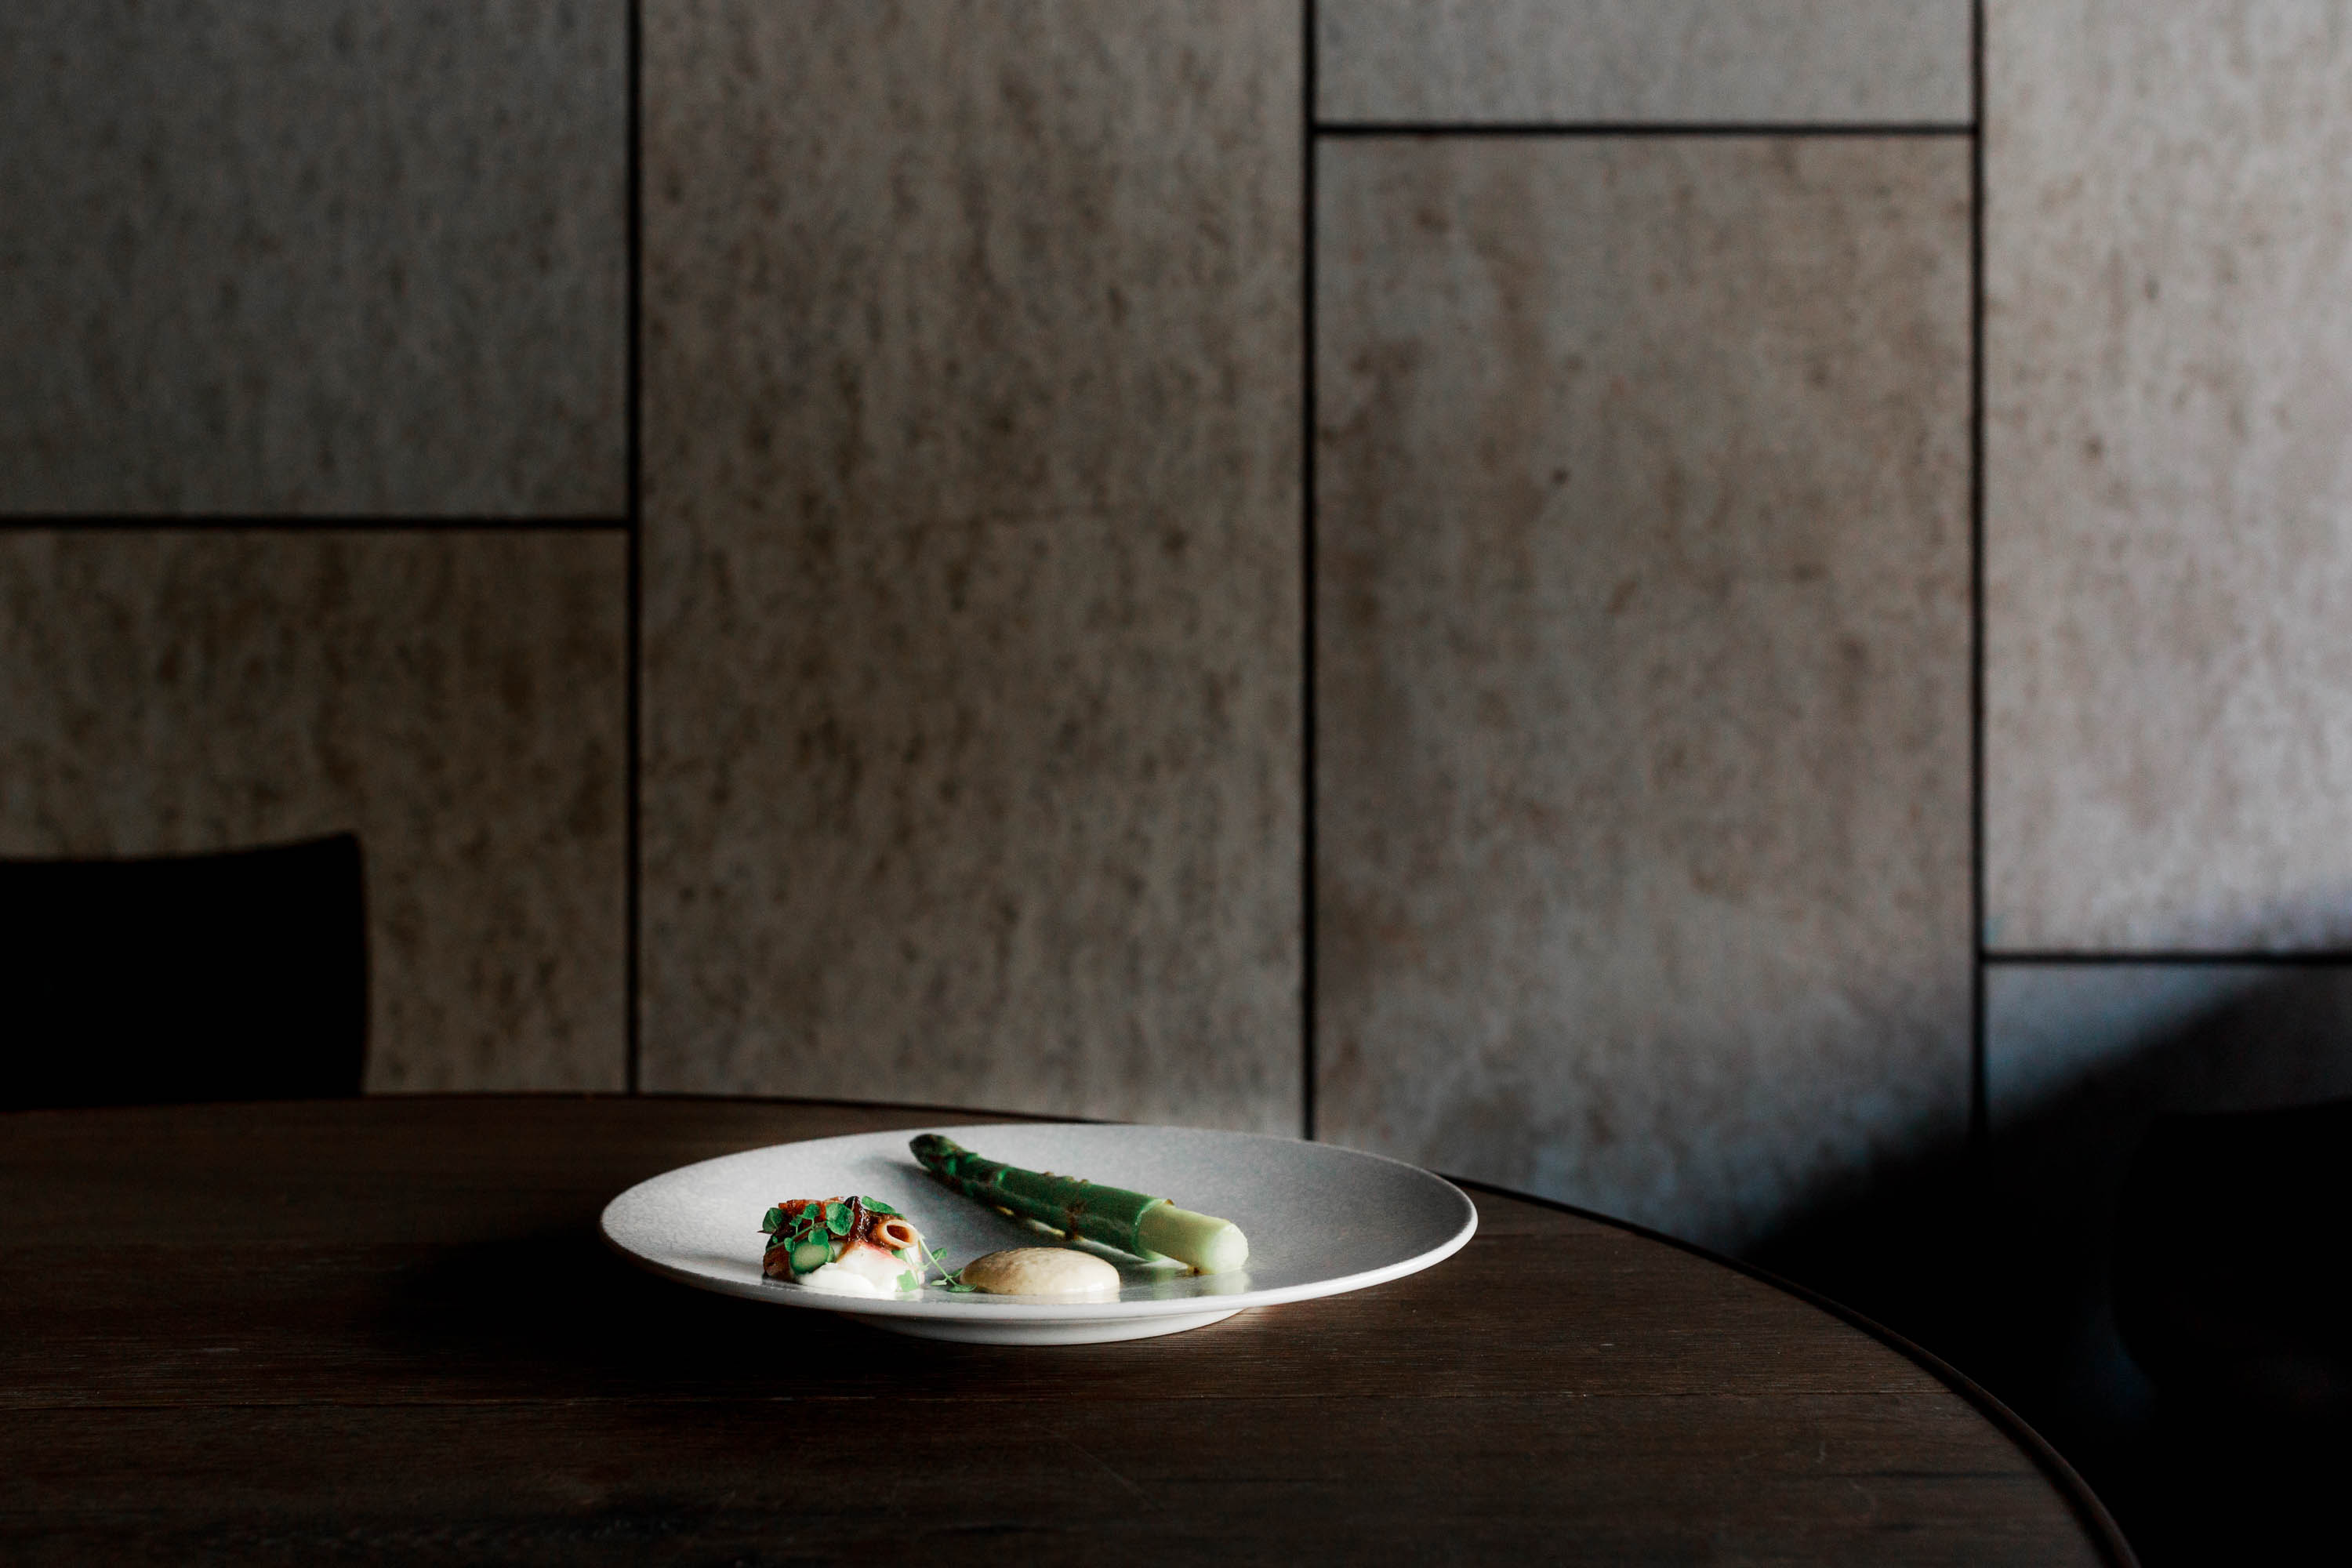 estelle-scott-pickett-melbourne-food-photography-asparagus